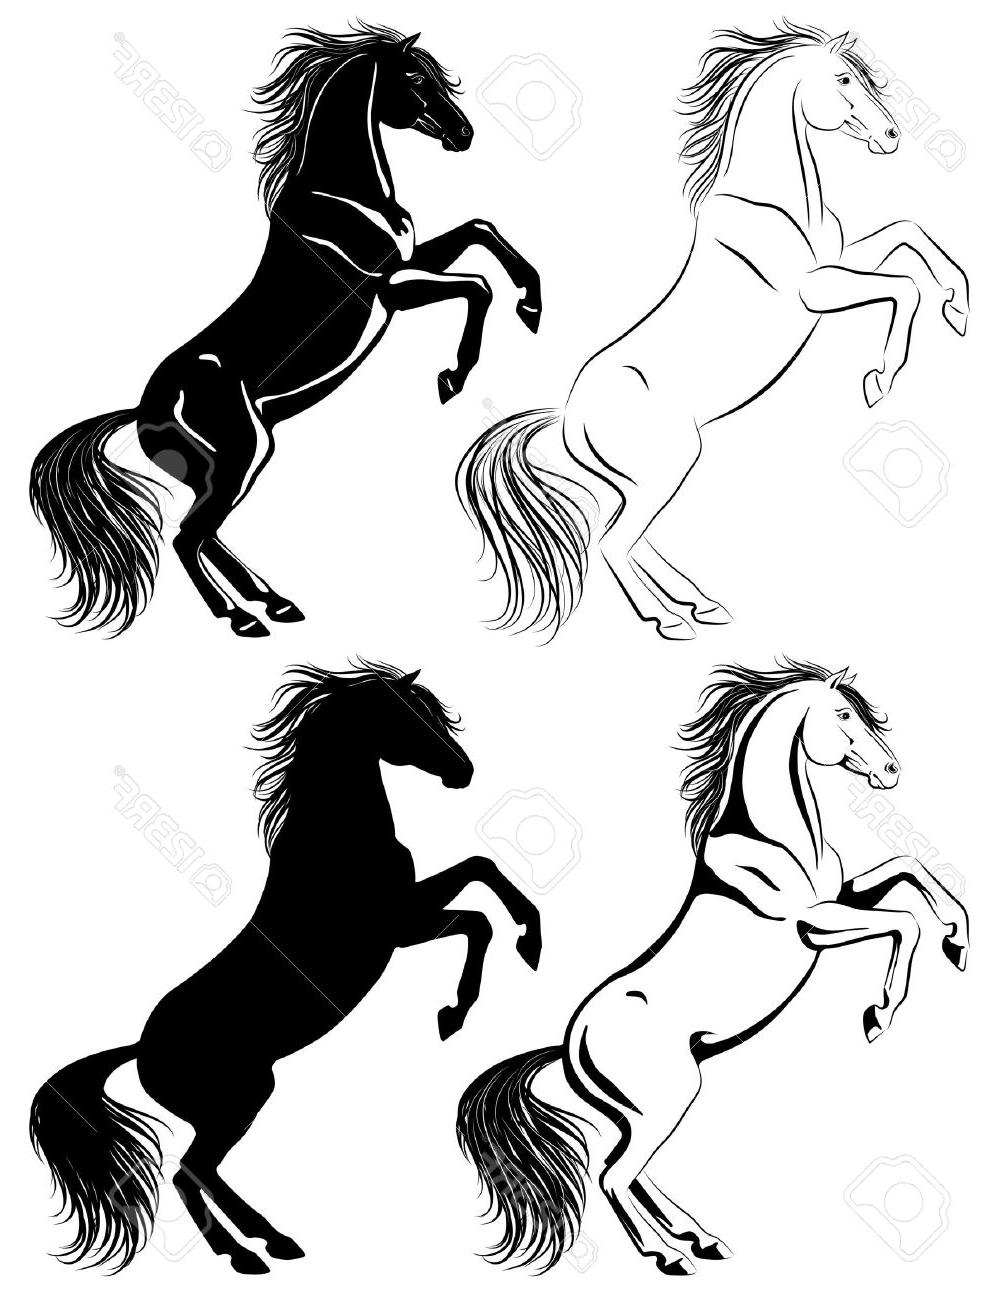 1004x1300 Best Hd Set Of Rearing Horse Illustrations In Different Techniques